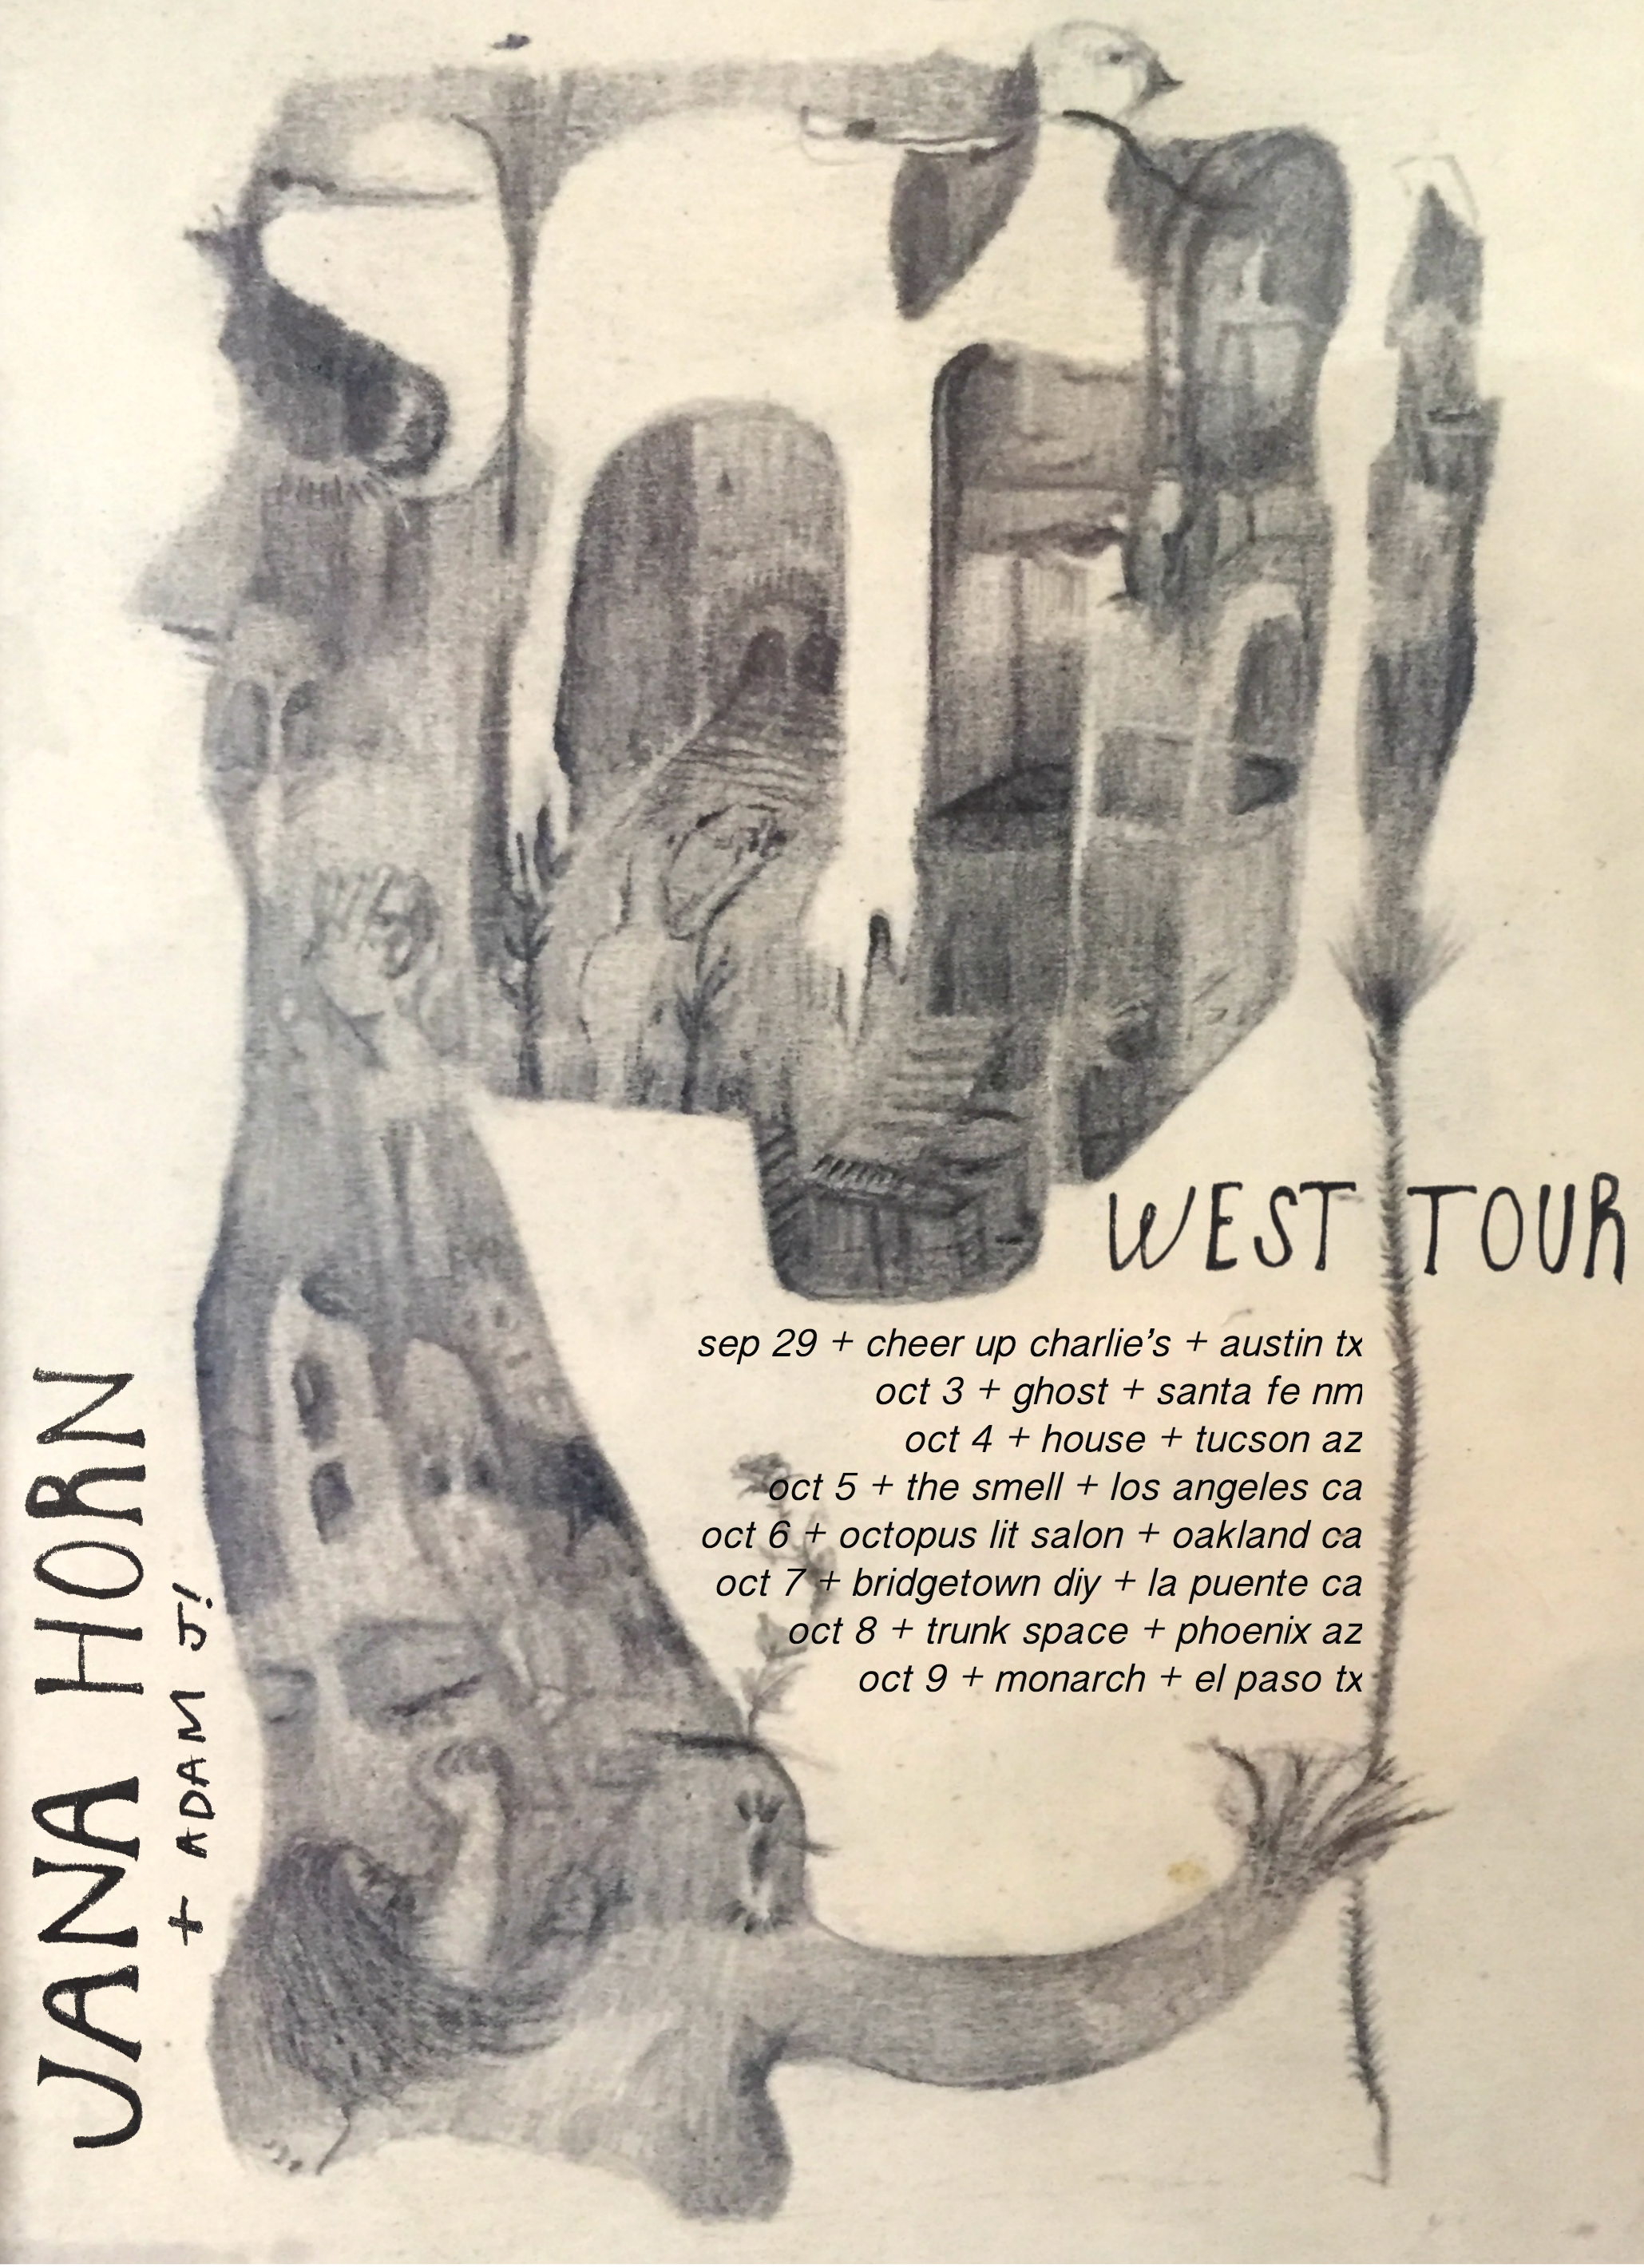 west tour poster.jpg